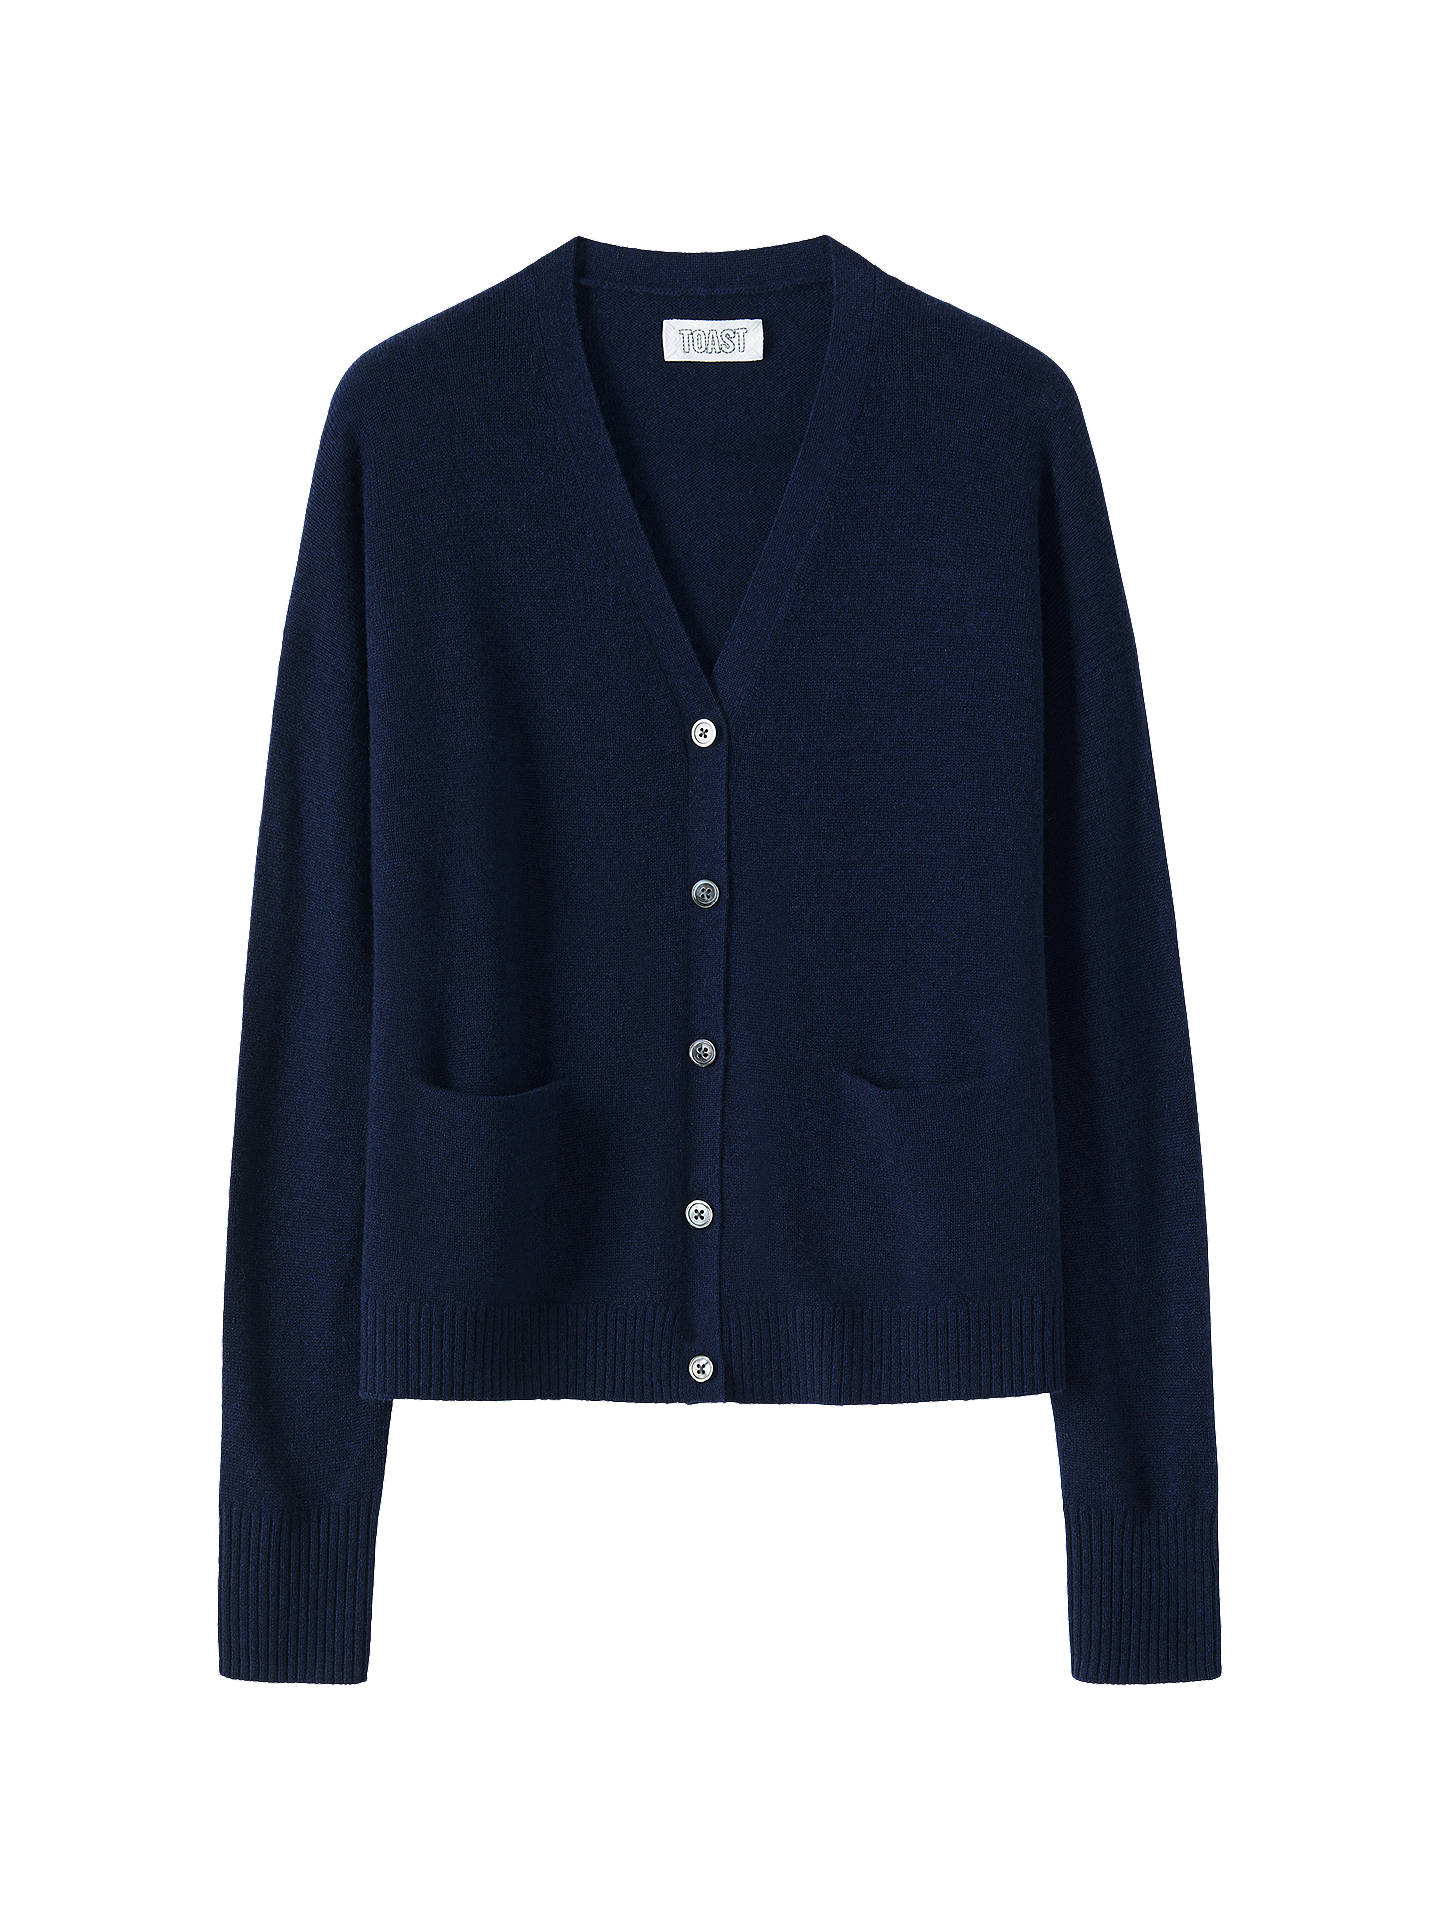 Buy Toast Wool Cashmere Blend Cardigan, Navy, XS-S Online at johnlewis.com